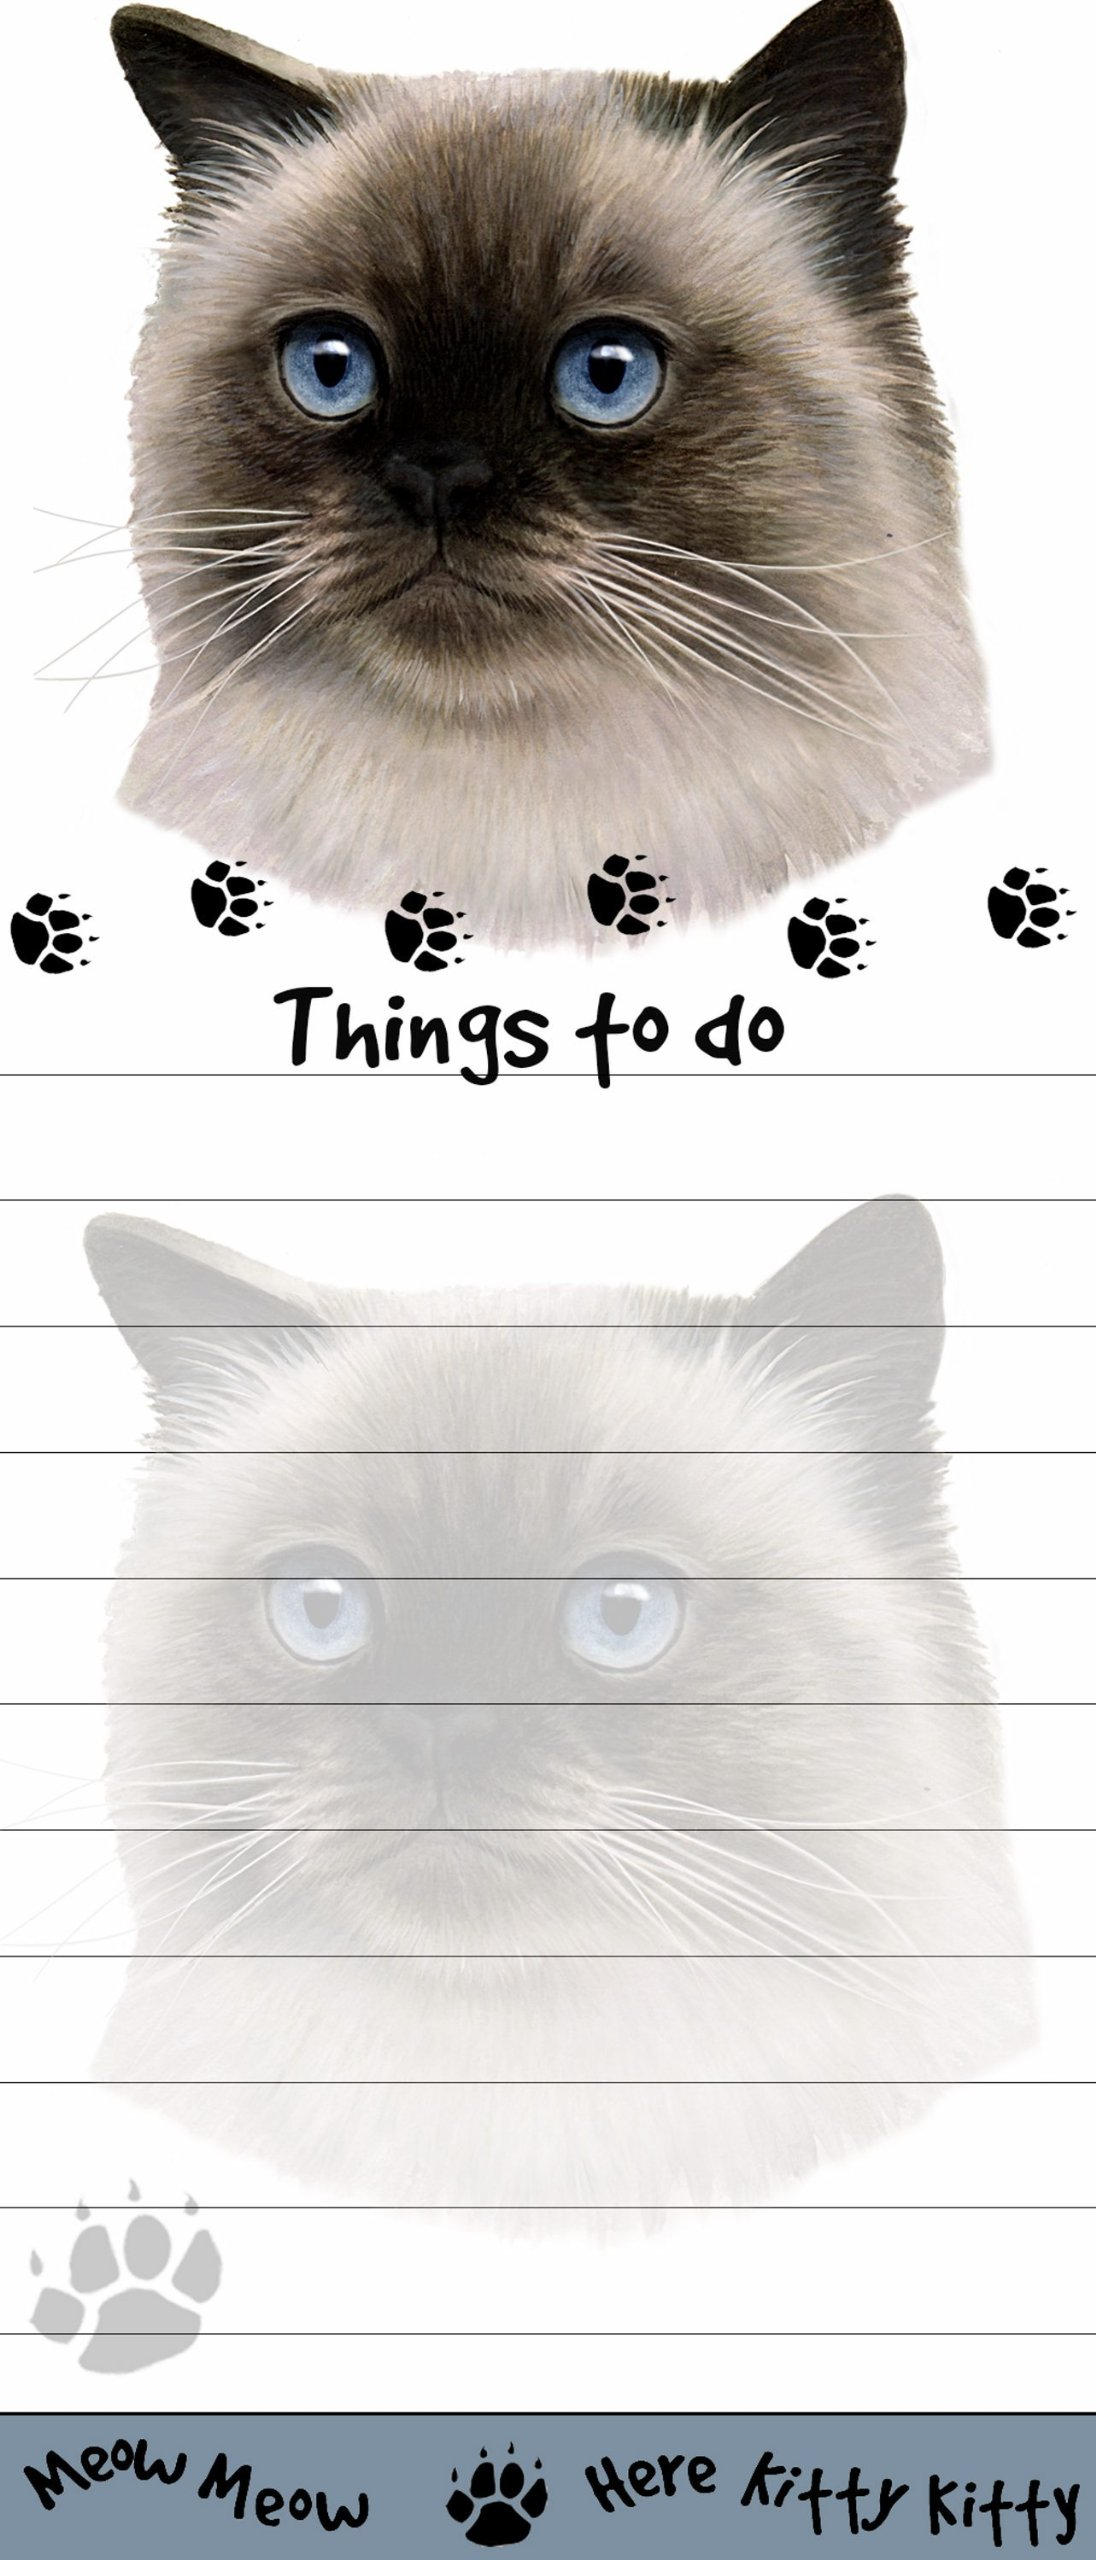 ''Himalayan Cat Magnetic List Pads'' Uniquely Shaped Sticky Notepad Measures 8.5 by 3.5 Inches by E&S Pets (Image #1)